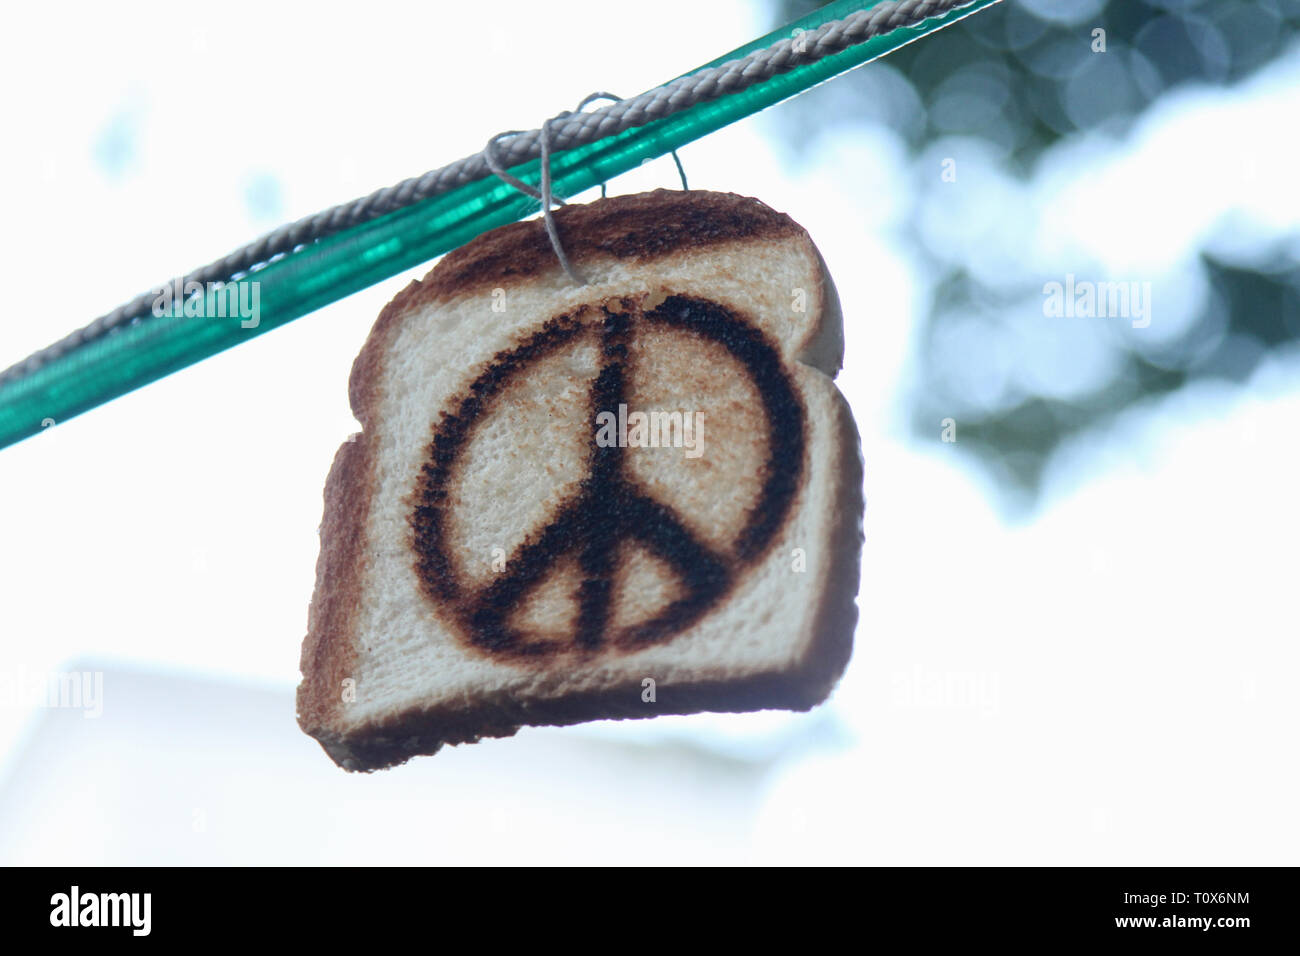 A peace sign is shown toasted on a slice of white bread and on display at the Mountain Jam music festival. - Stock Image